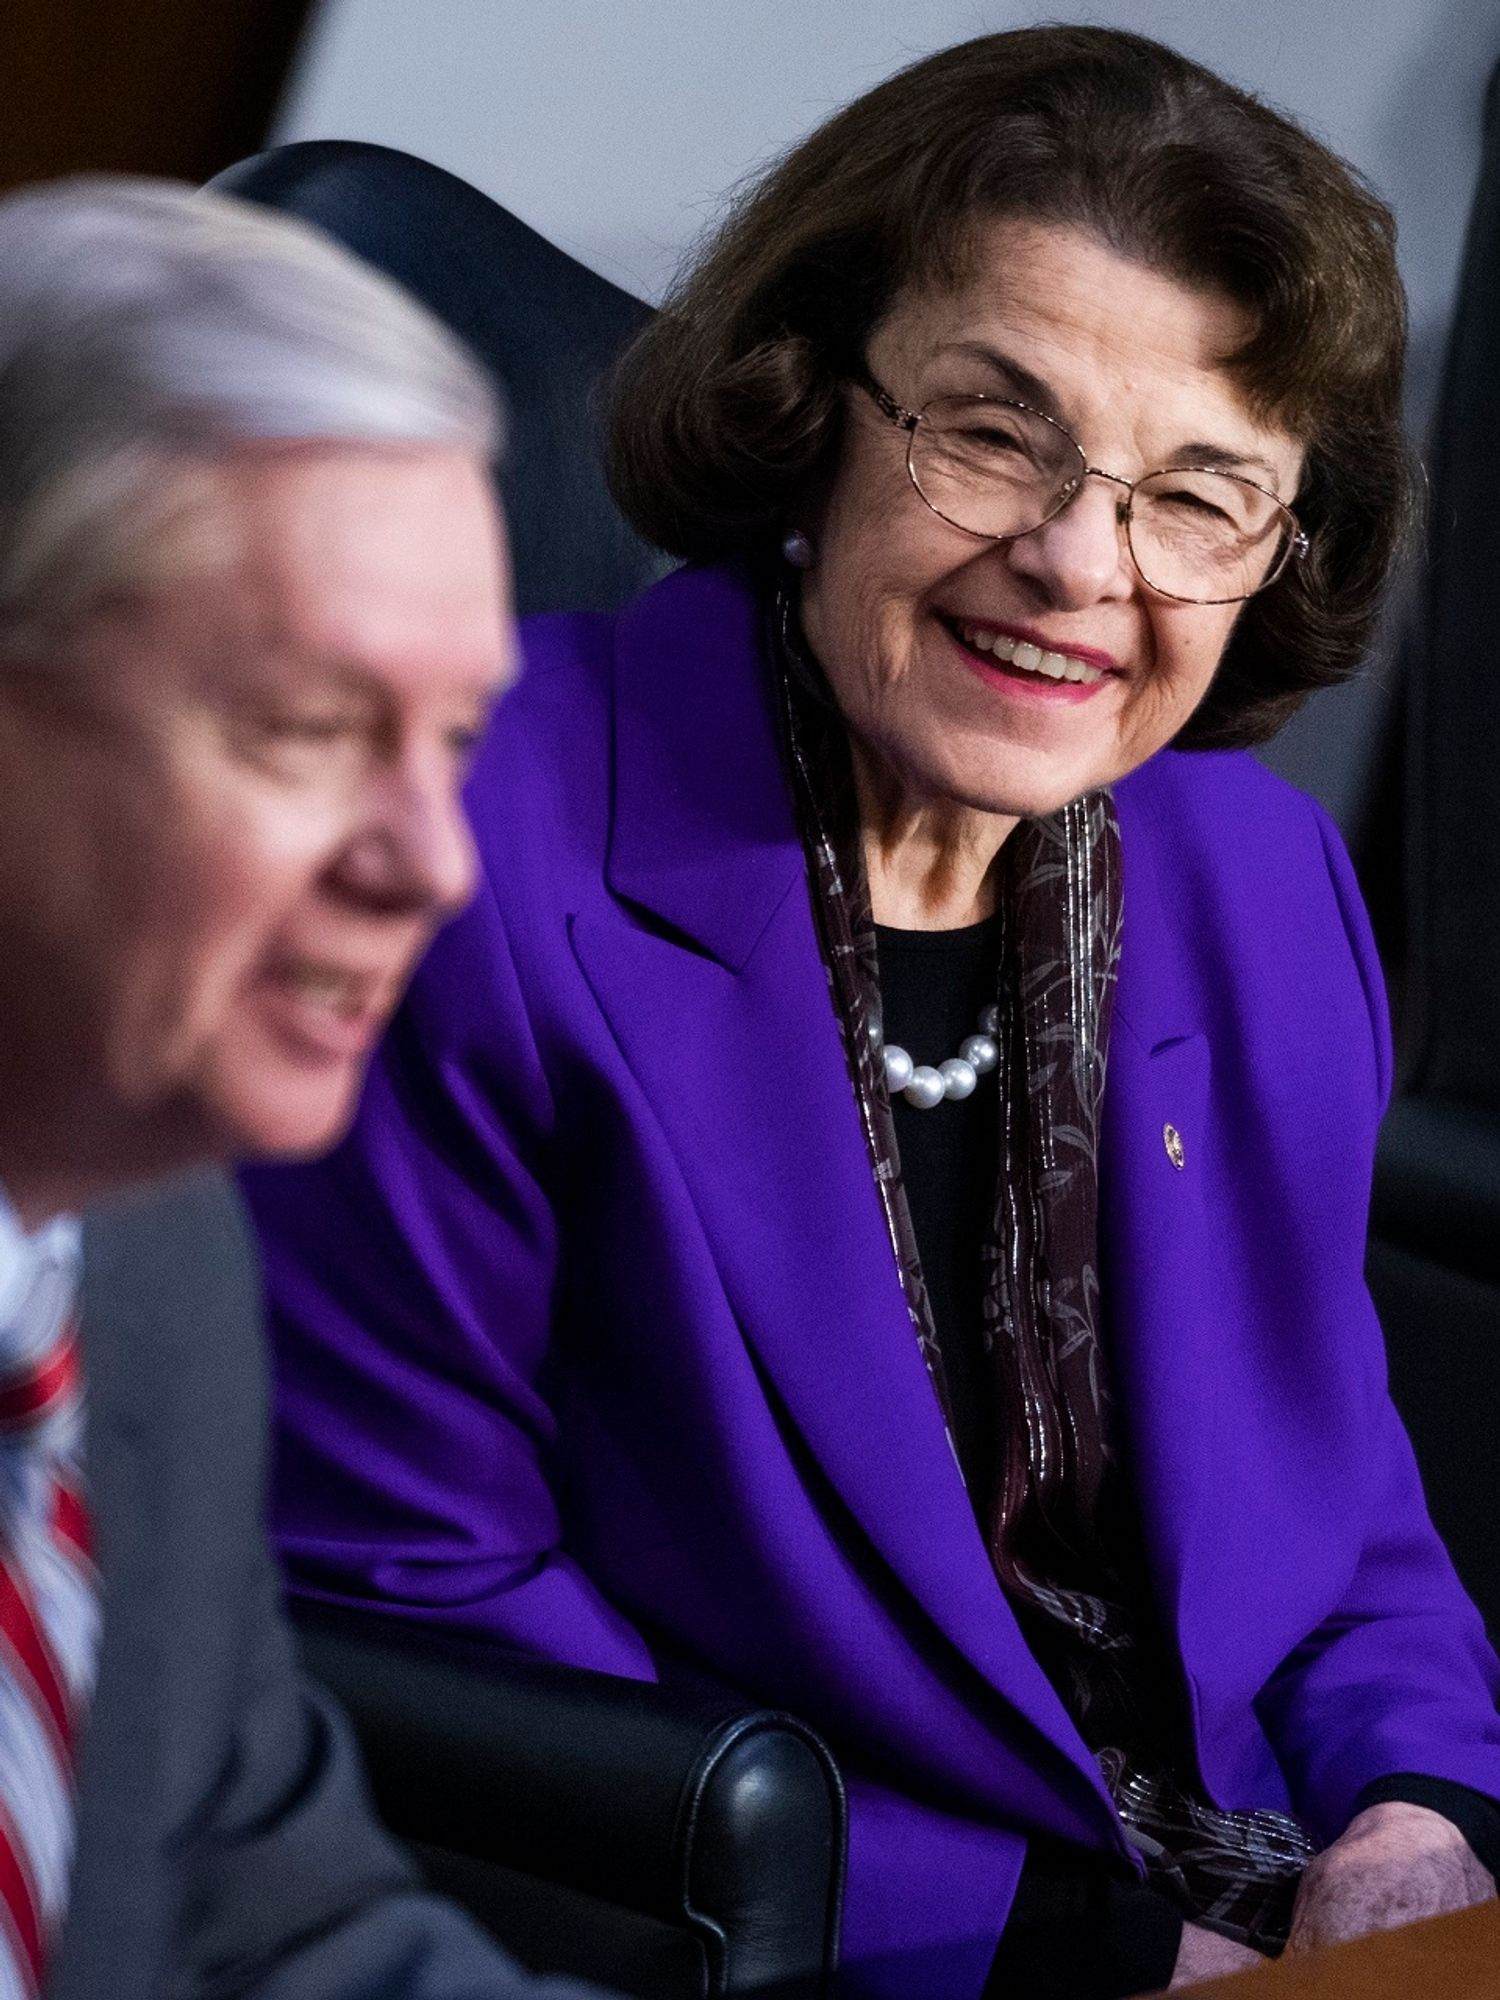 Democratic operatives call for Dianne Feinstein to step down as Judiciary Committee ranking member